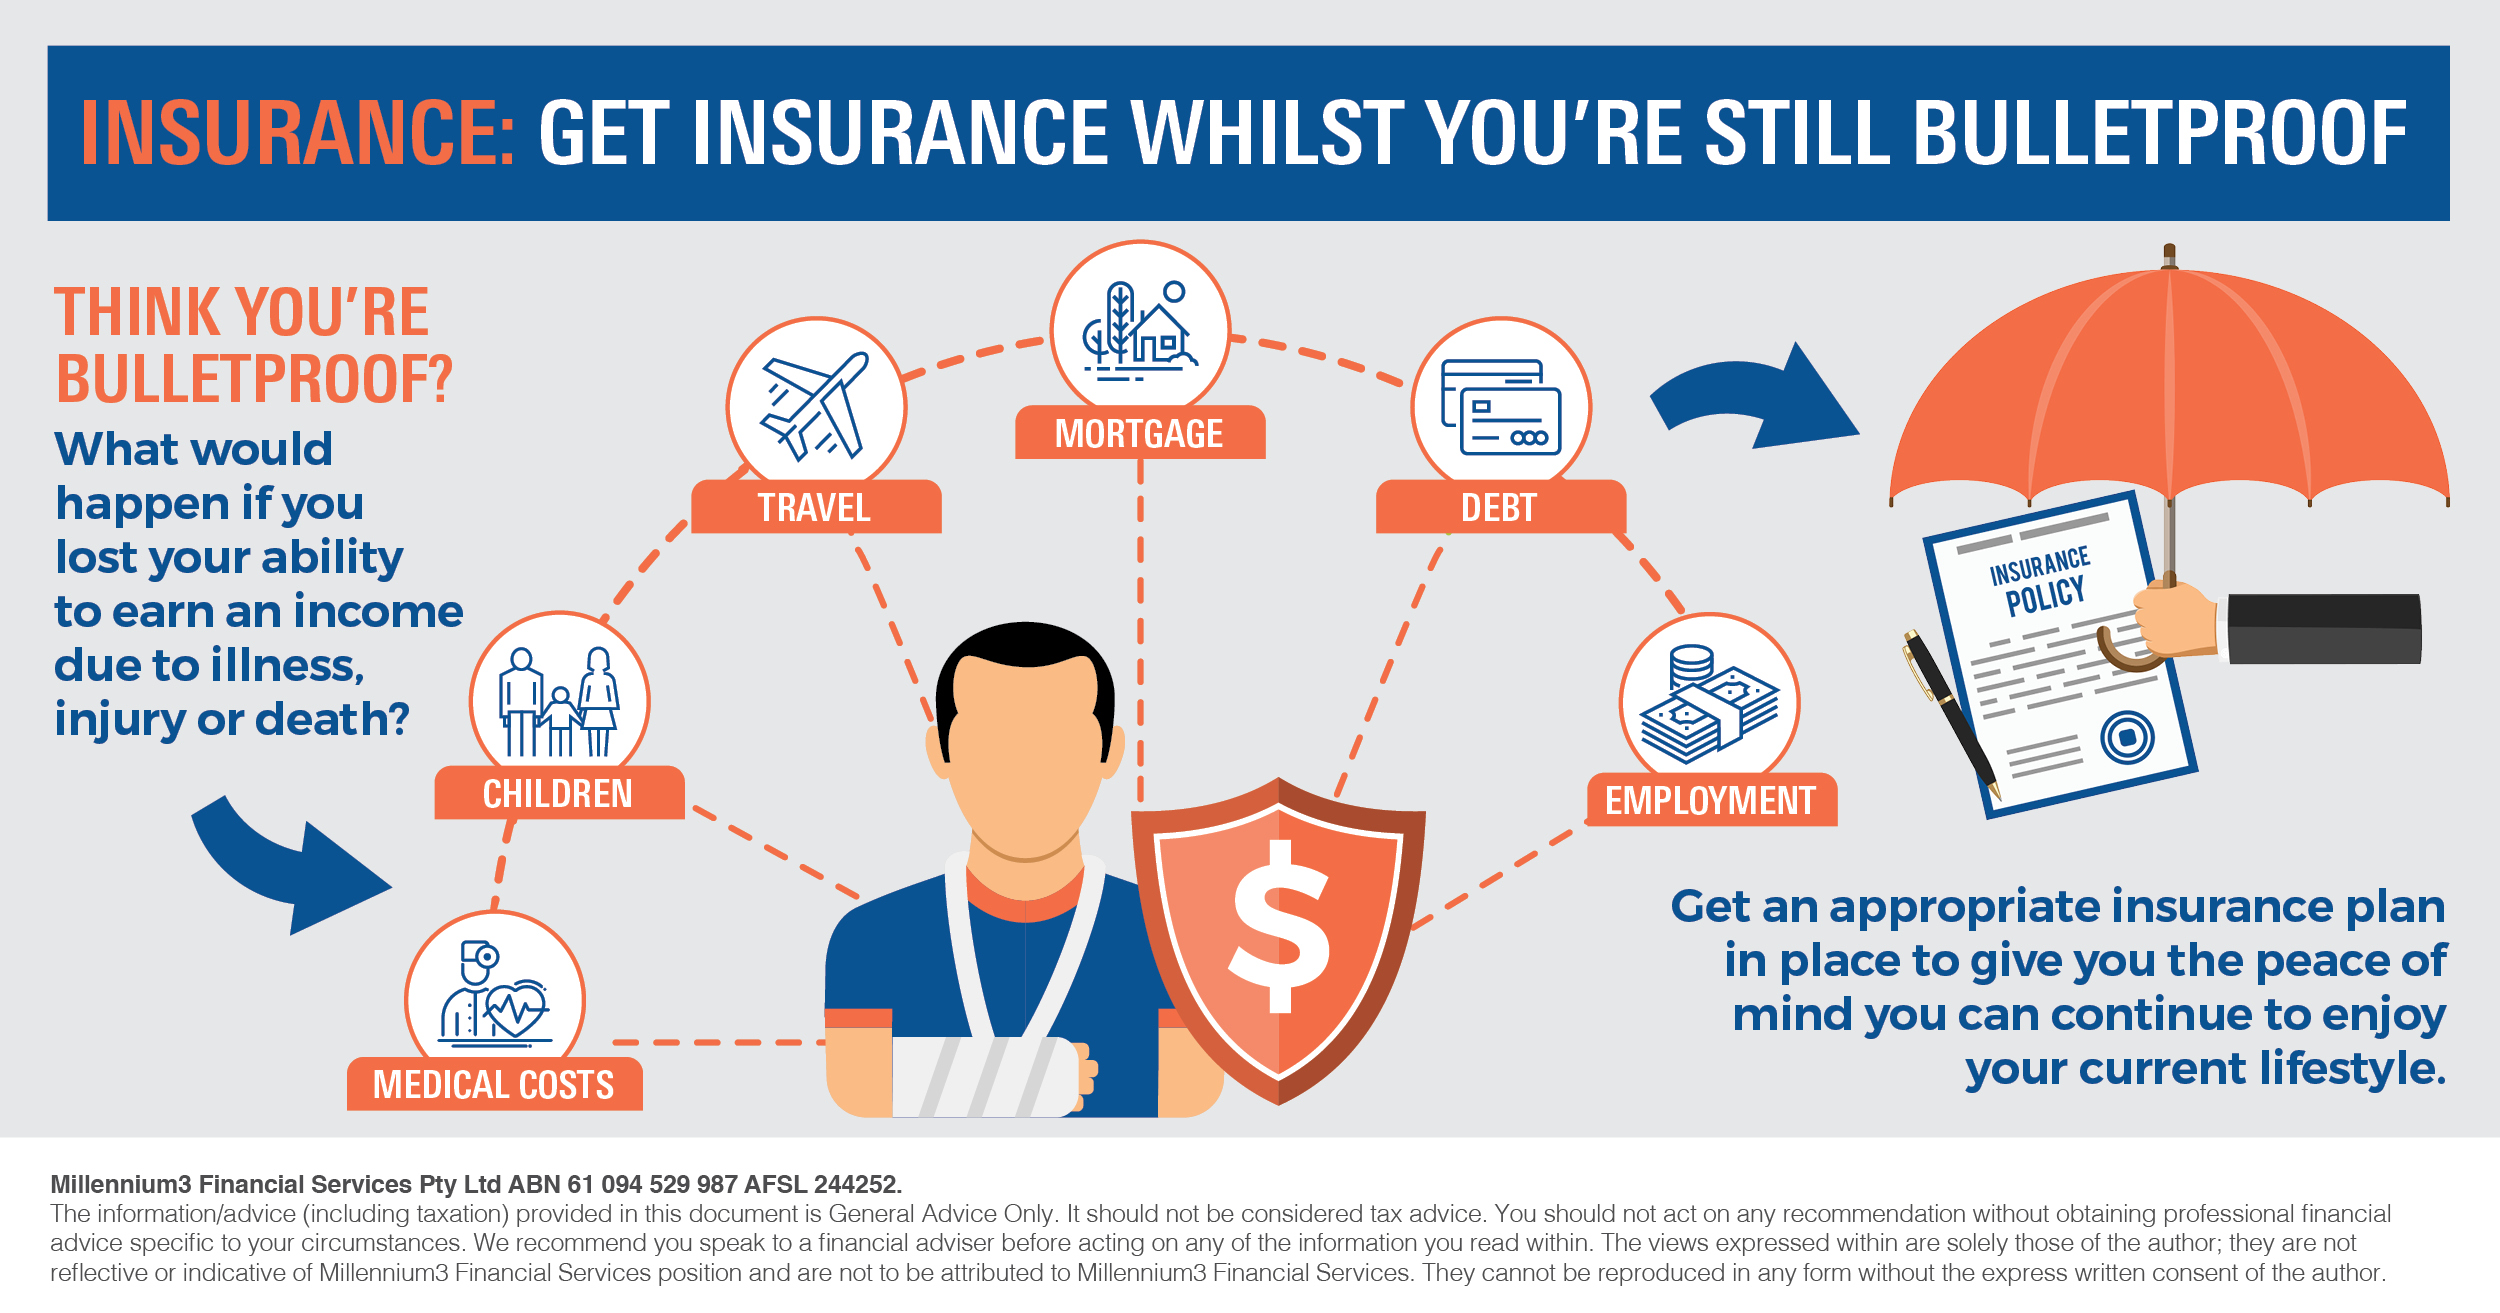 Infographic_Insurance_Get insurance whilst you're still bulletproof_M3